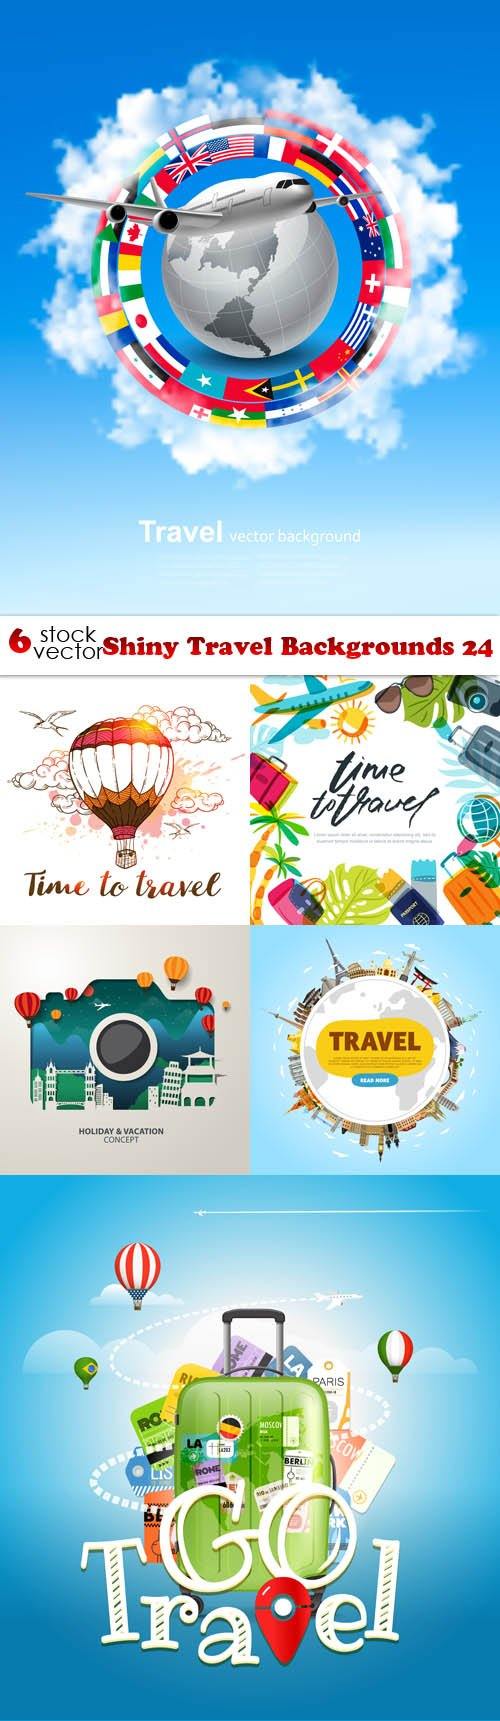 Vectors - Shiny Travel Backgrounds 24